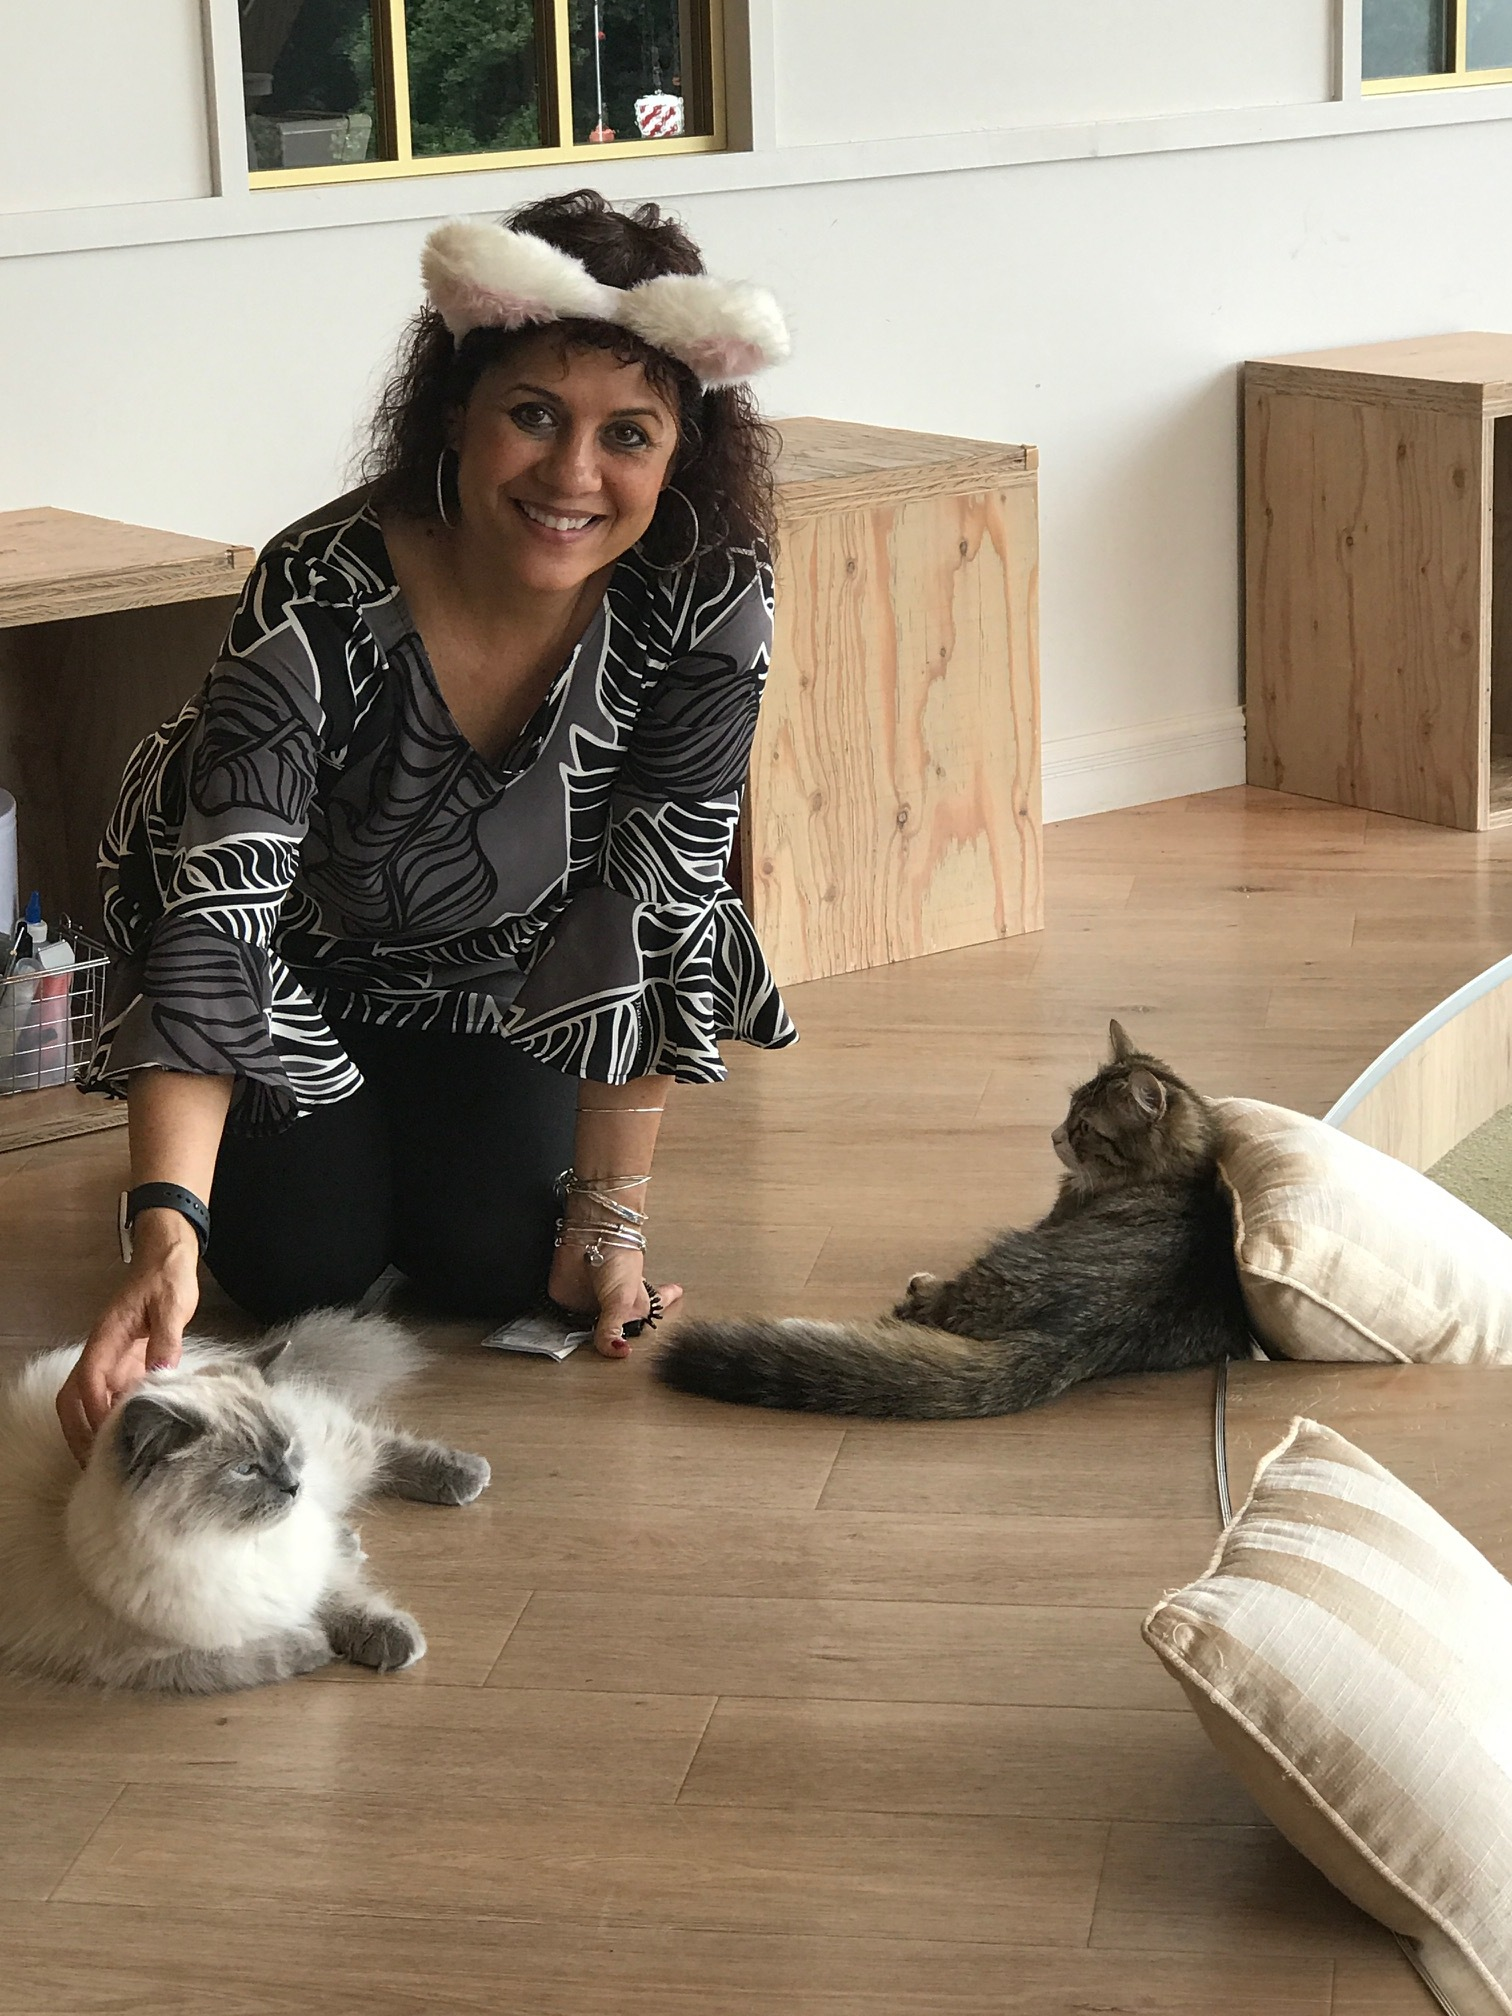 Cindy at the Cat Cafe